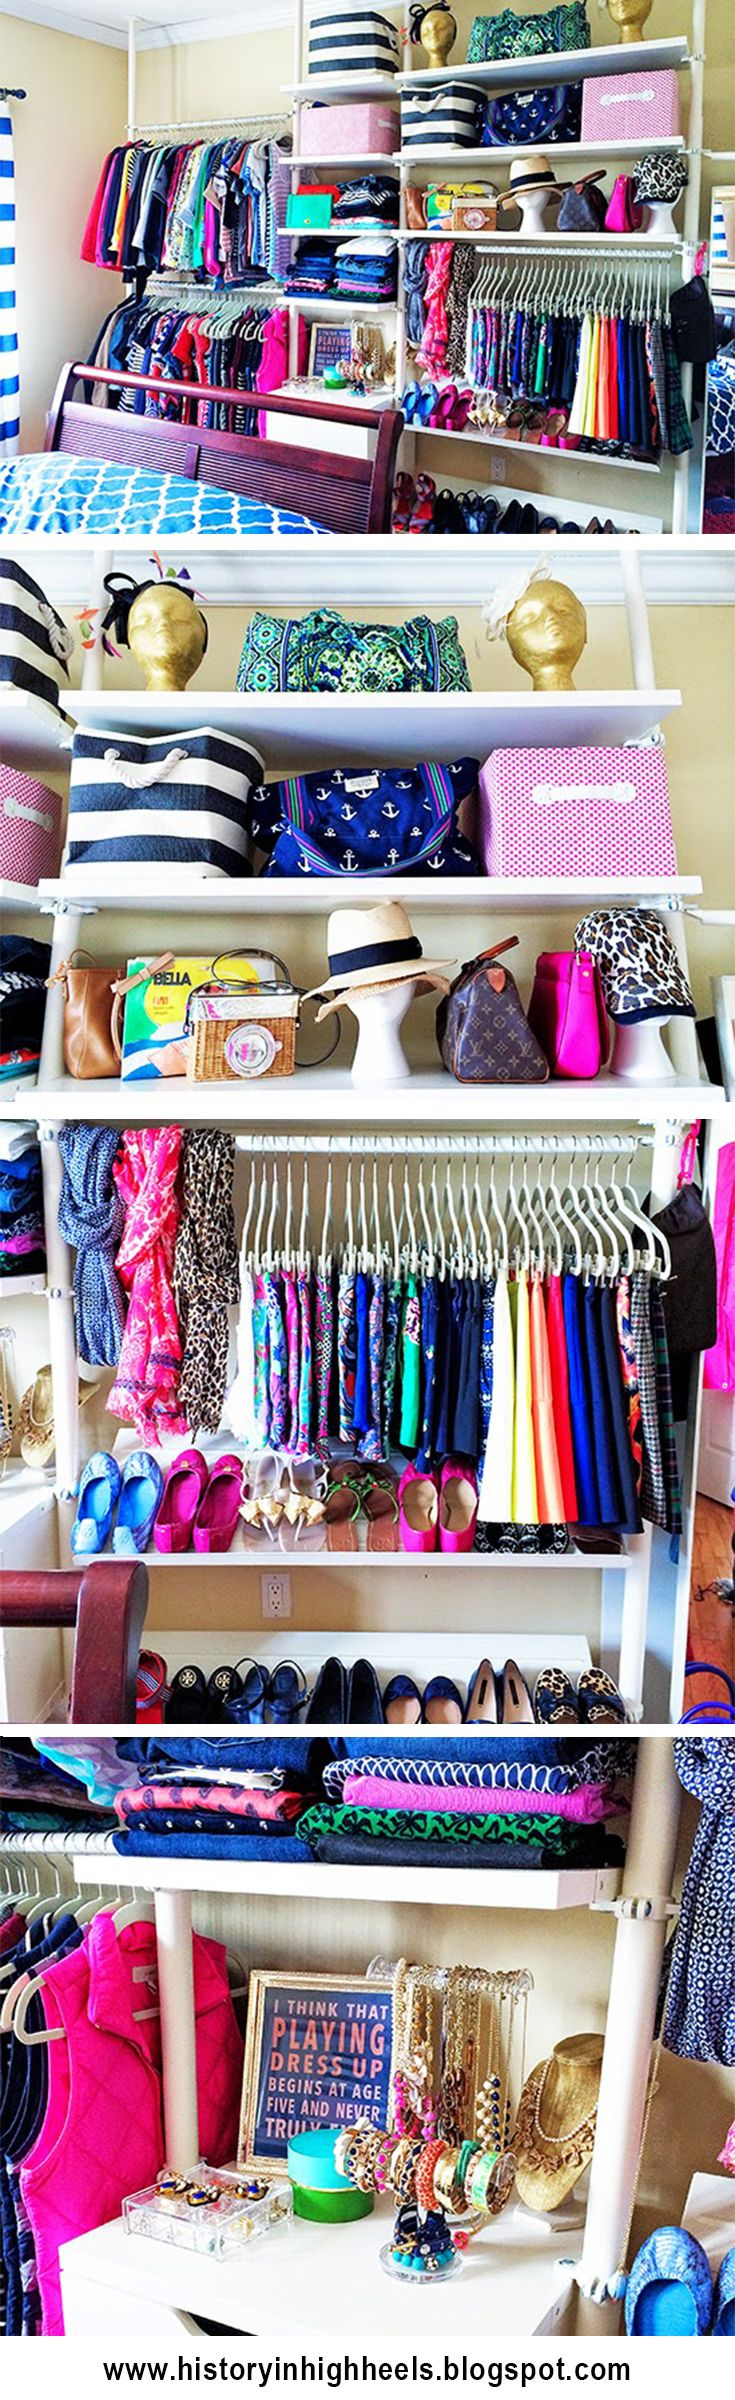 No closet space? No problem! Turn any wall into a giant boutique closet with the Ikea Stoleman system. http://historyinhighheels.blogspot.com/2014/09/apartment-therapy-closet-tour.html